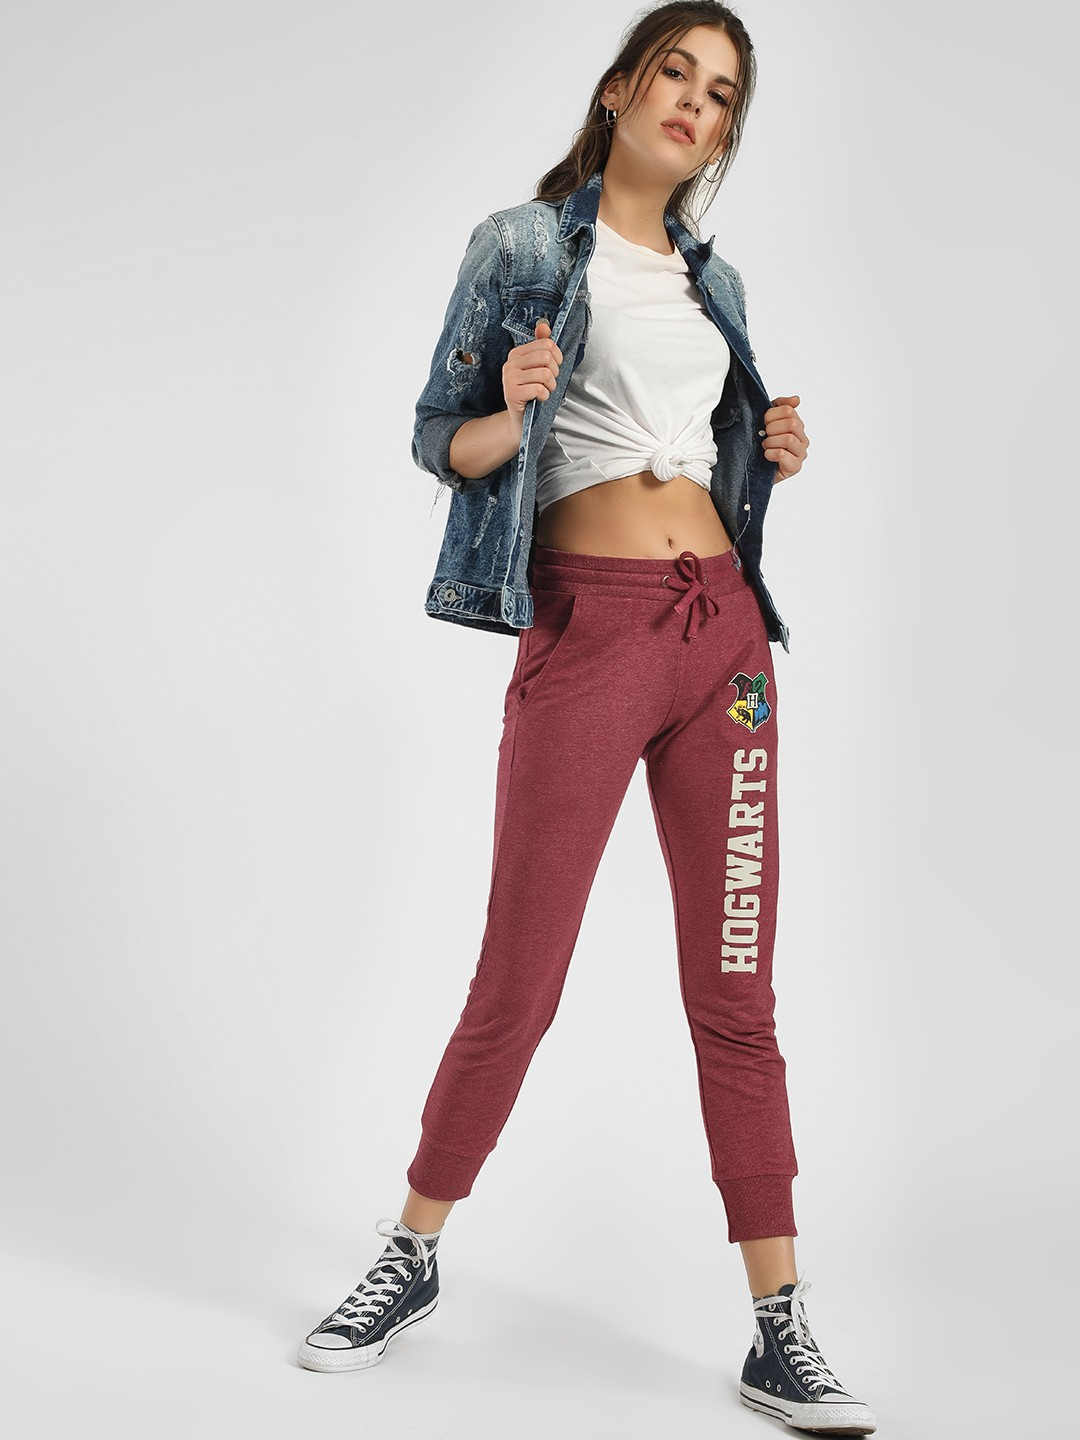 Free Authority Red Harry Potter Hogwarts Print Joggers 1